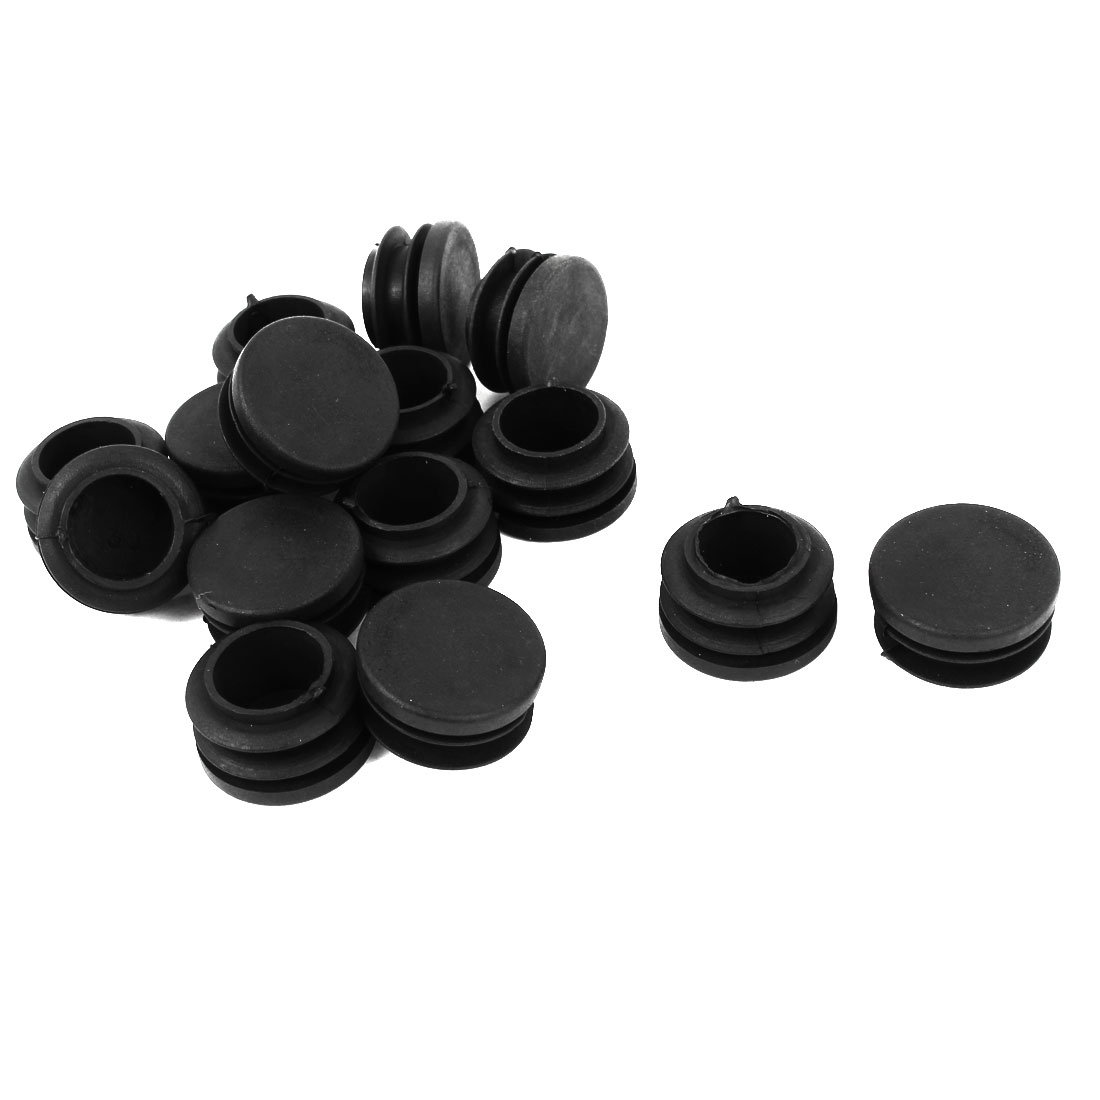 15 Pieces Black Plastic Round Blanking End Caps Tubing Tube Inserts 30mm Dia